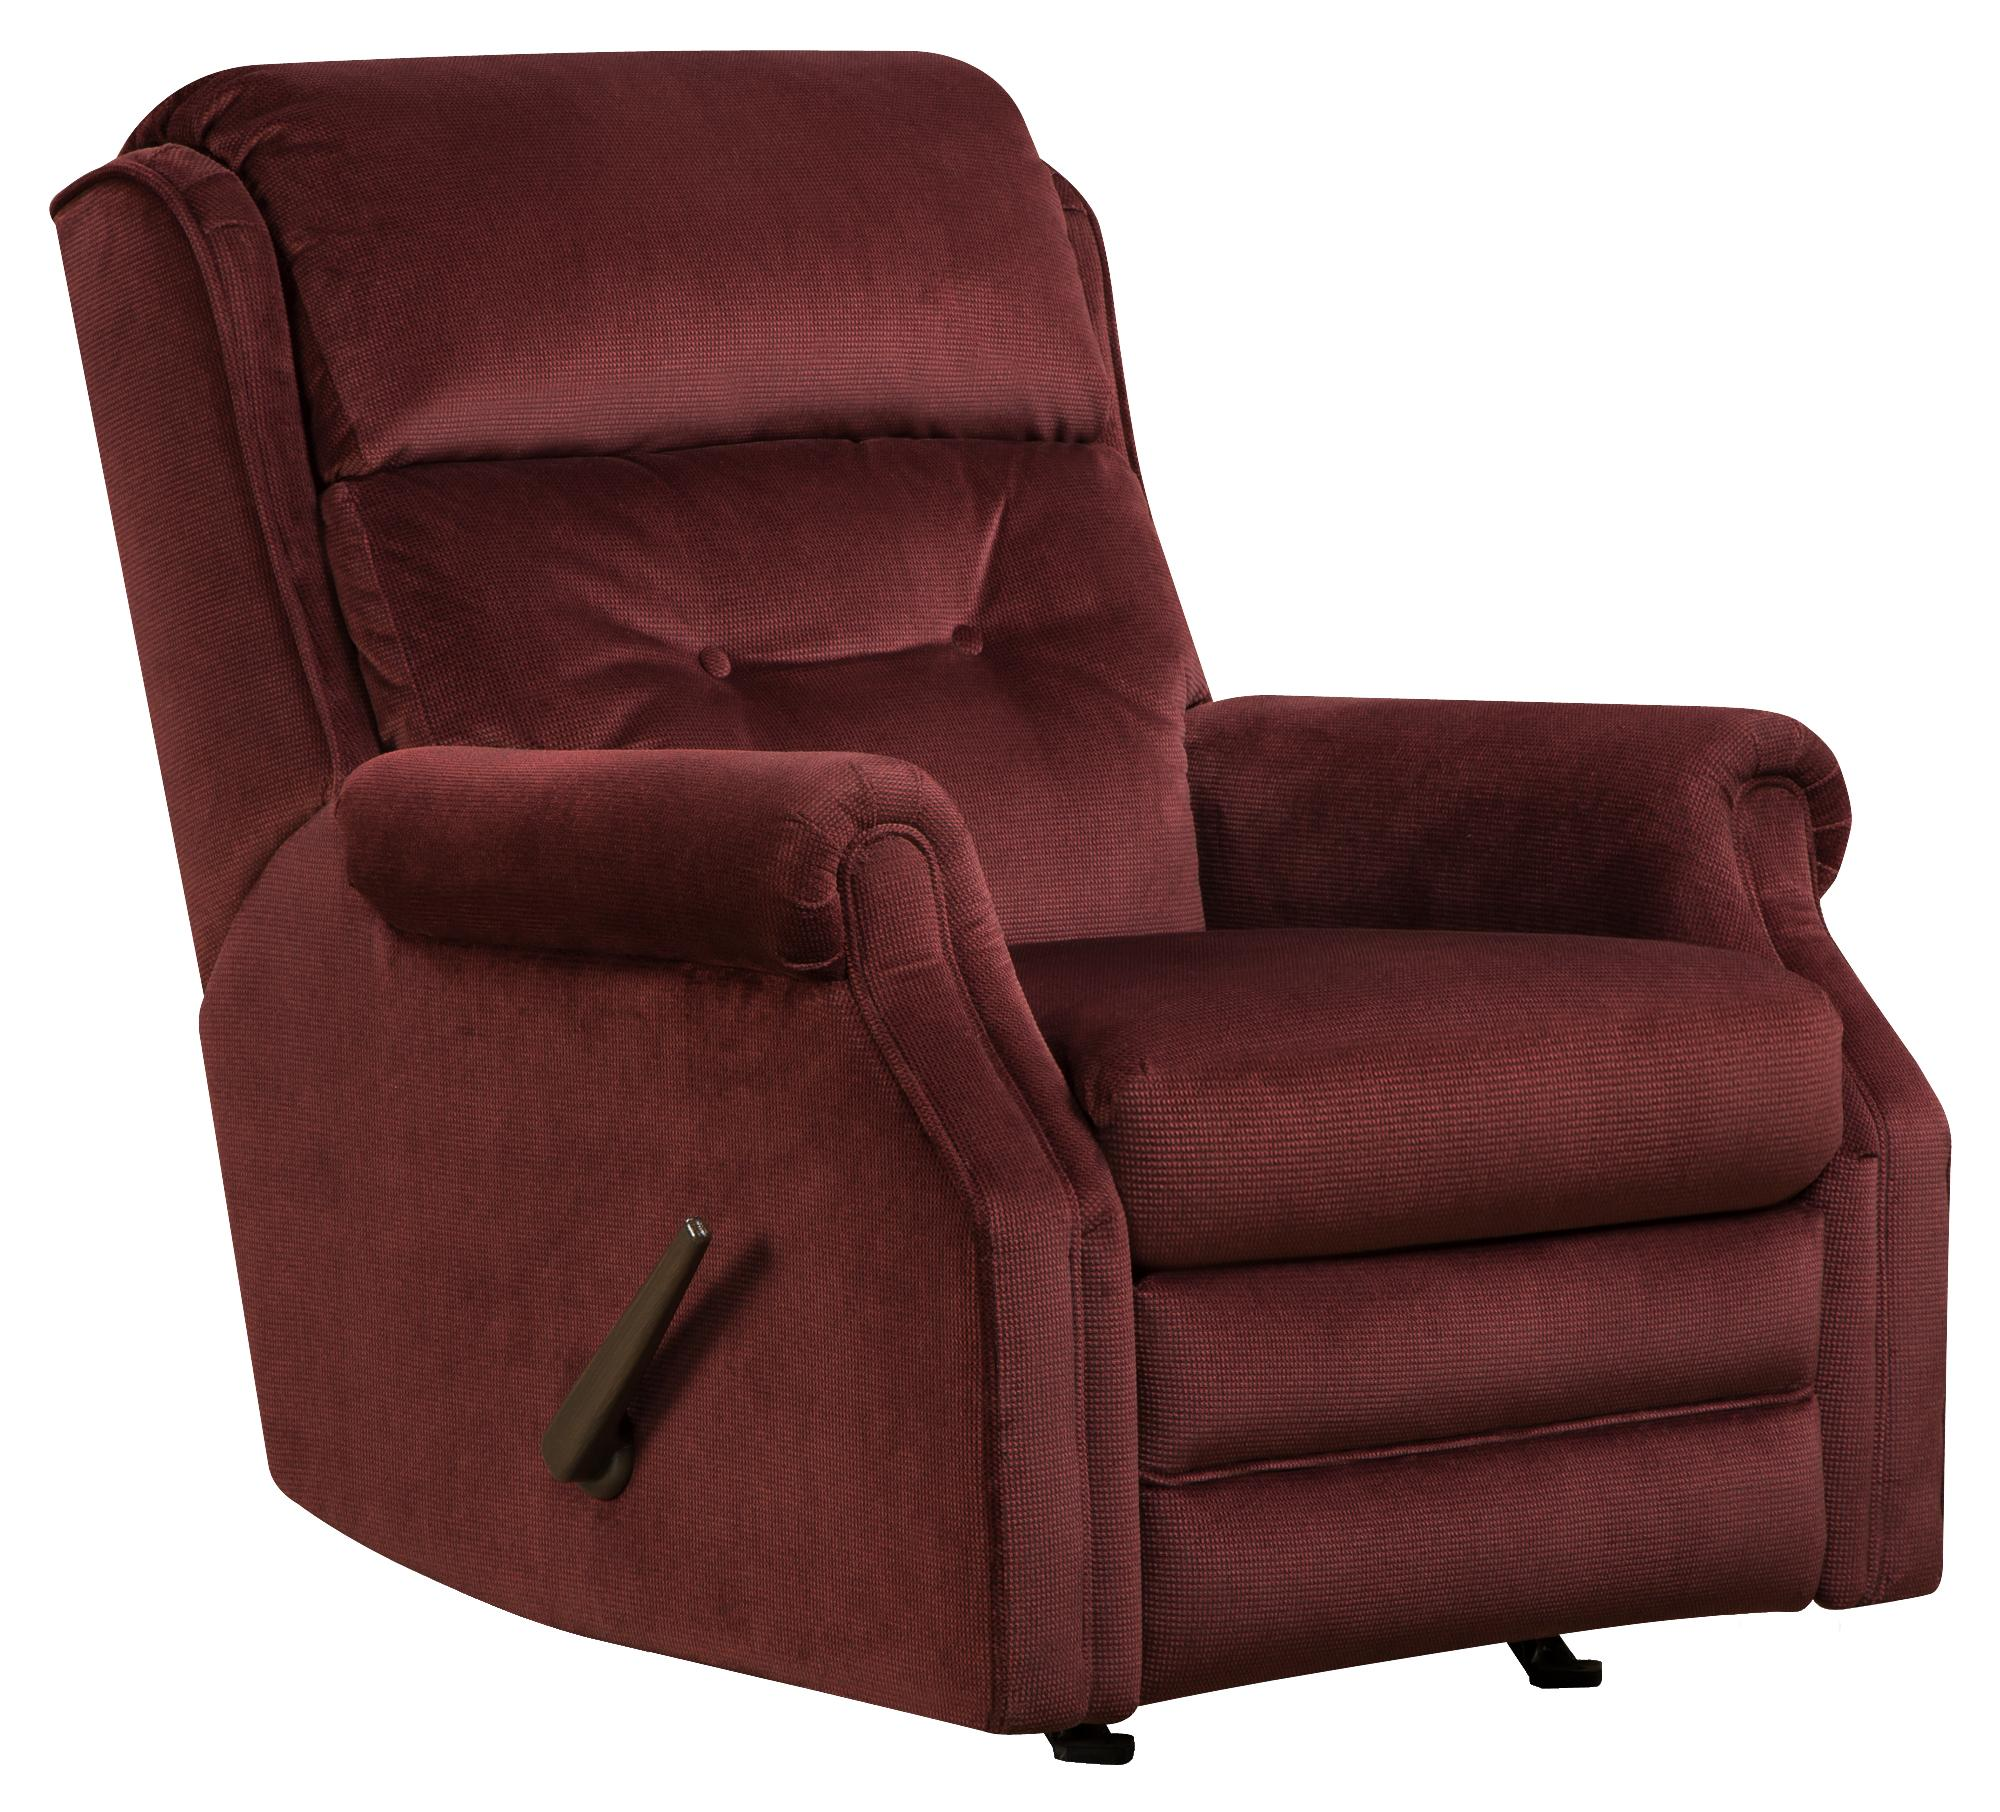 Belfort Motion Recliners Nantucket Wall Recliner with Power Headrest - Item Number: 6130P